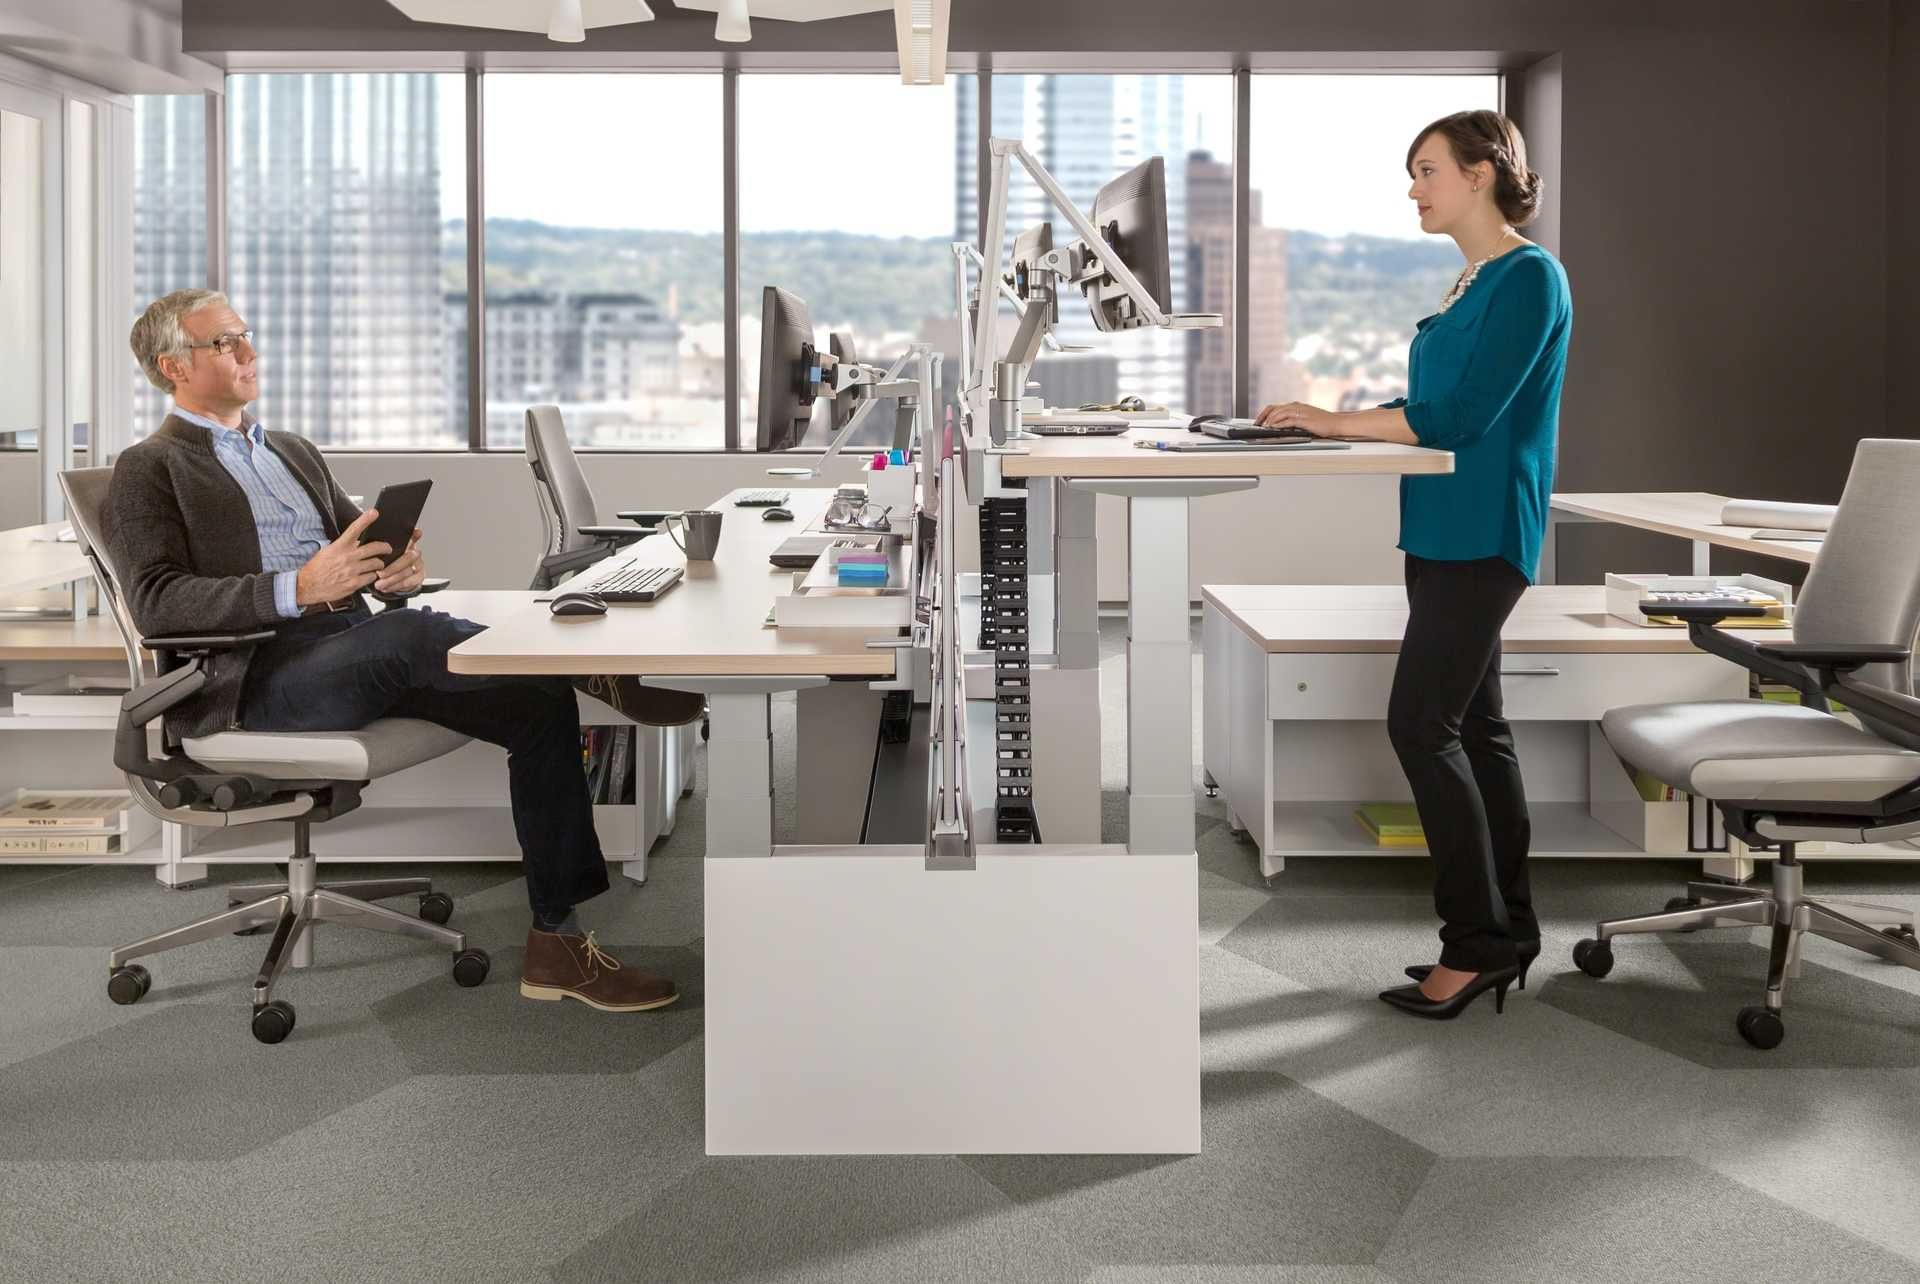 Here you can see a mix of Sitting Standing Desks but at a